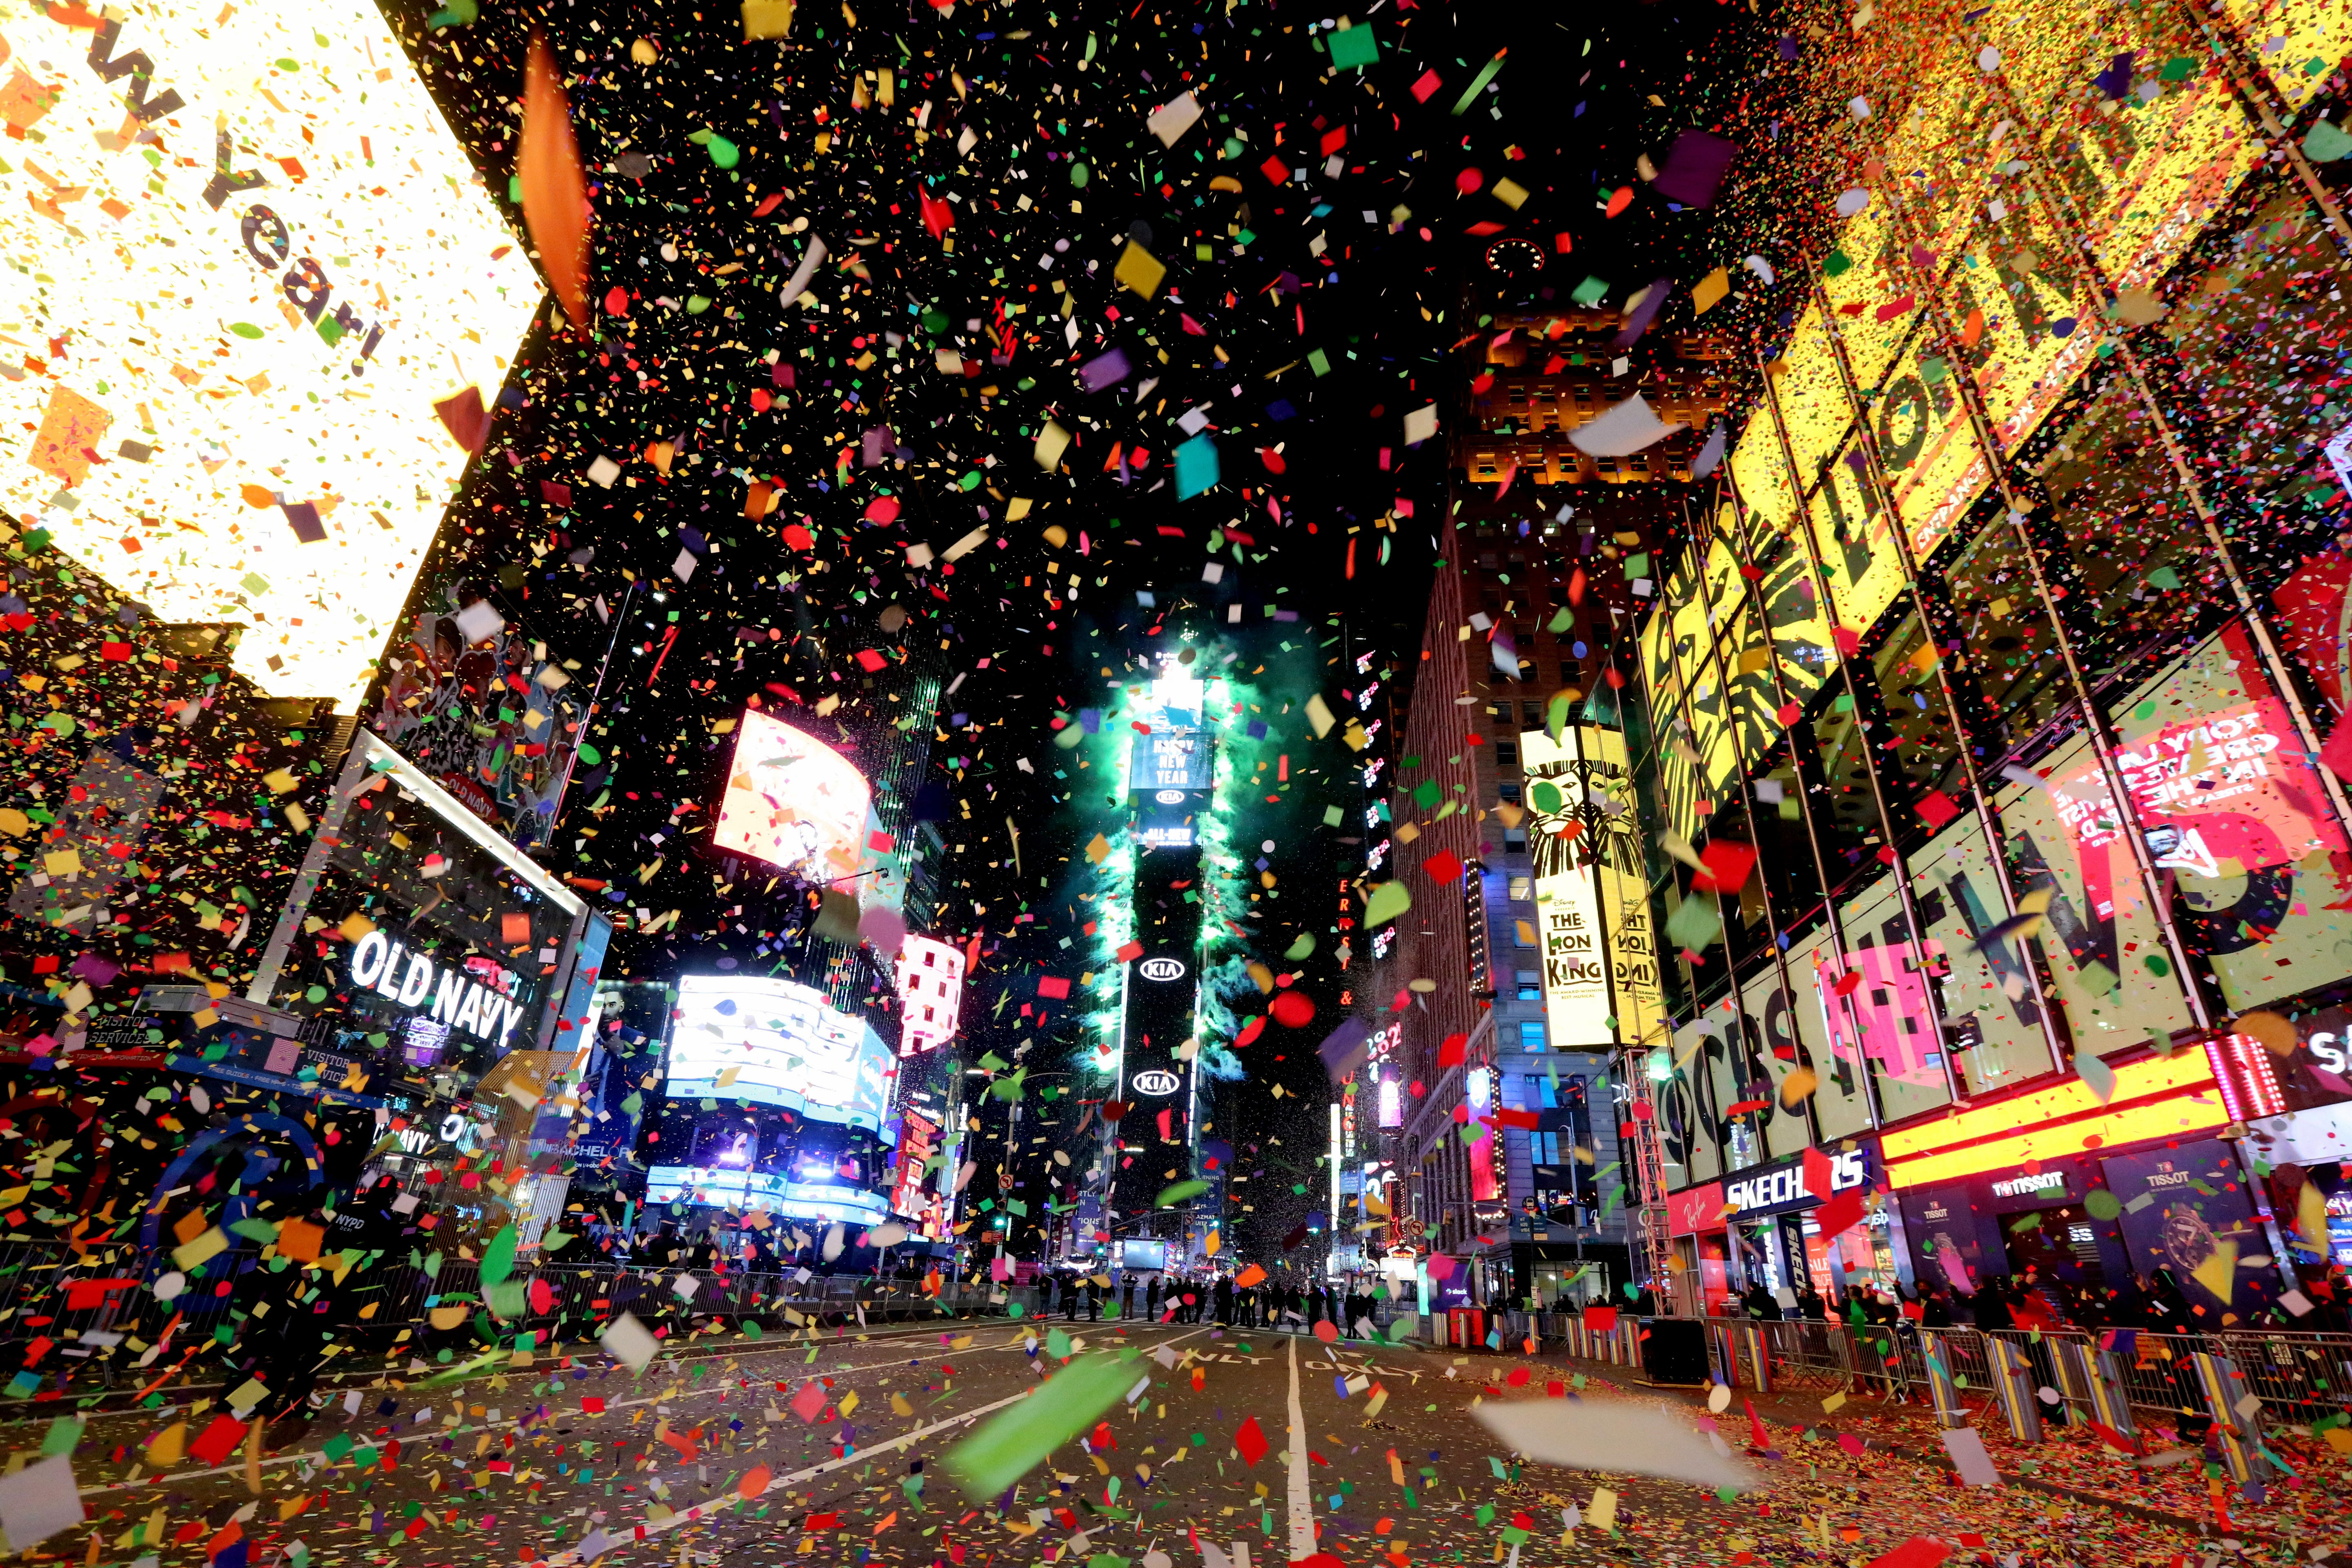 Times Square, usually packed with thousands for New Year's celebrations, was closed to all but a select few in 2020 due to COVID-19 restrictions. Here confetti rains down on the empty streets after the ball drop, marking the start of 2021.